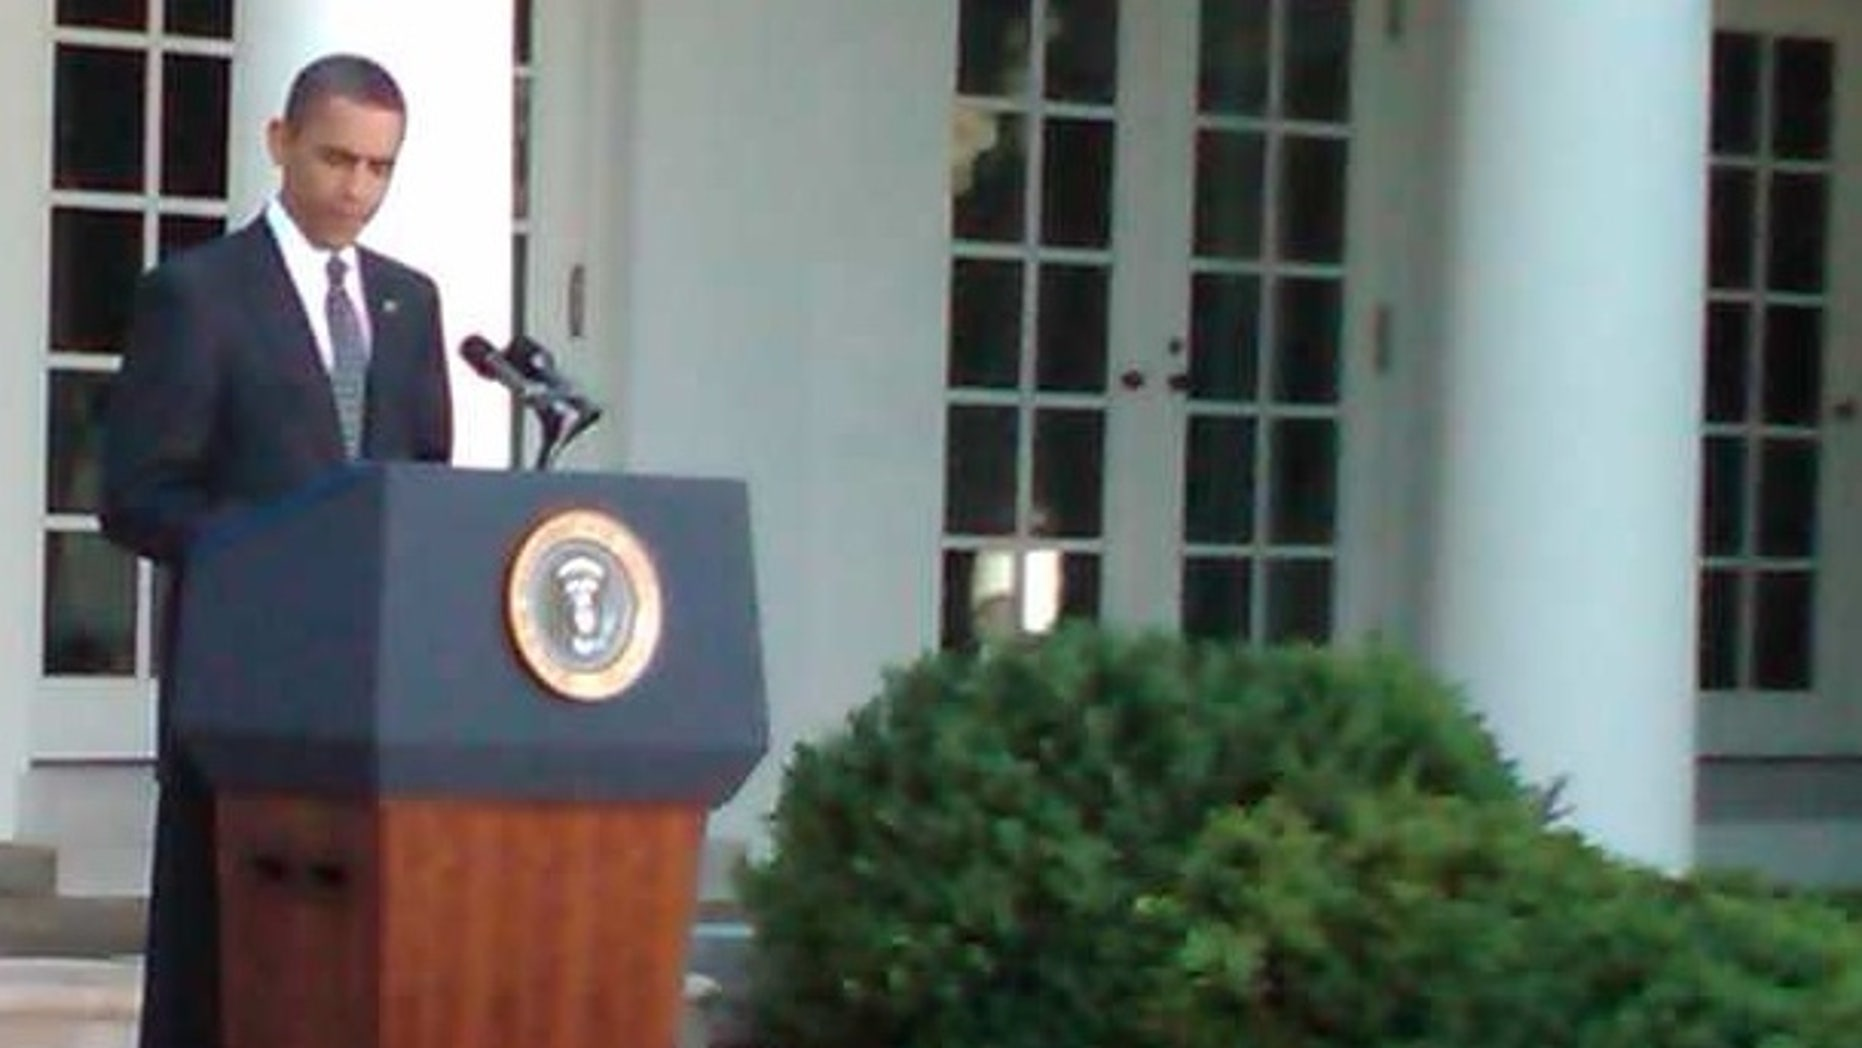 A small rodent (lower right corner) scurries in front of President Obama during remarks about Wall Street reform.        Fox Photo by Bryan Cole